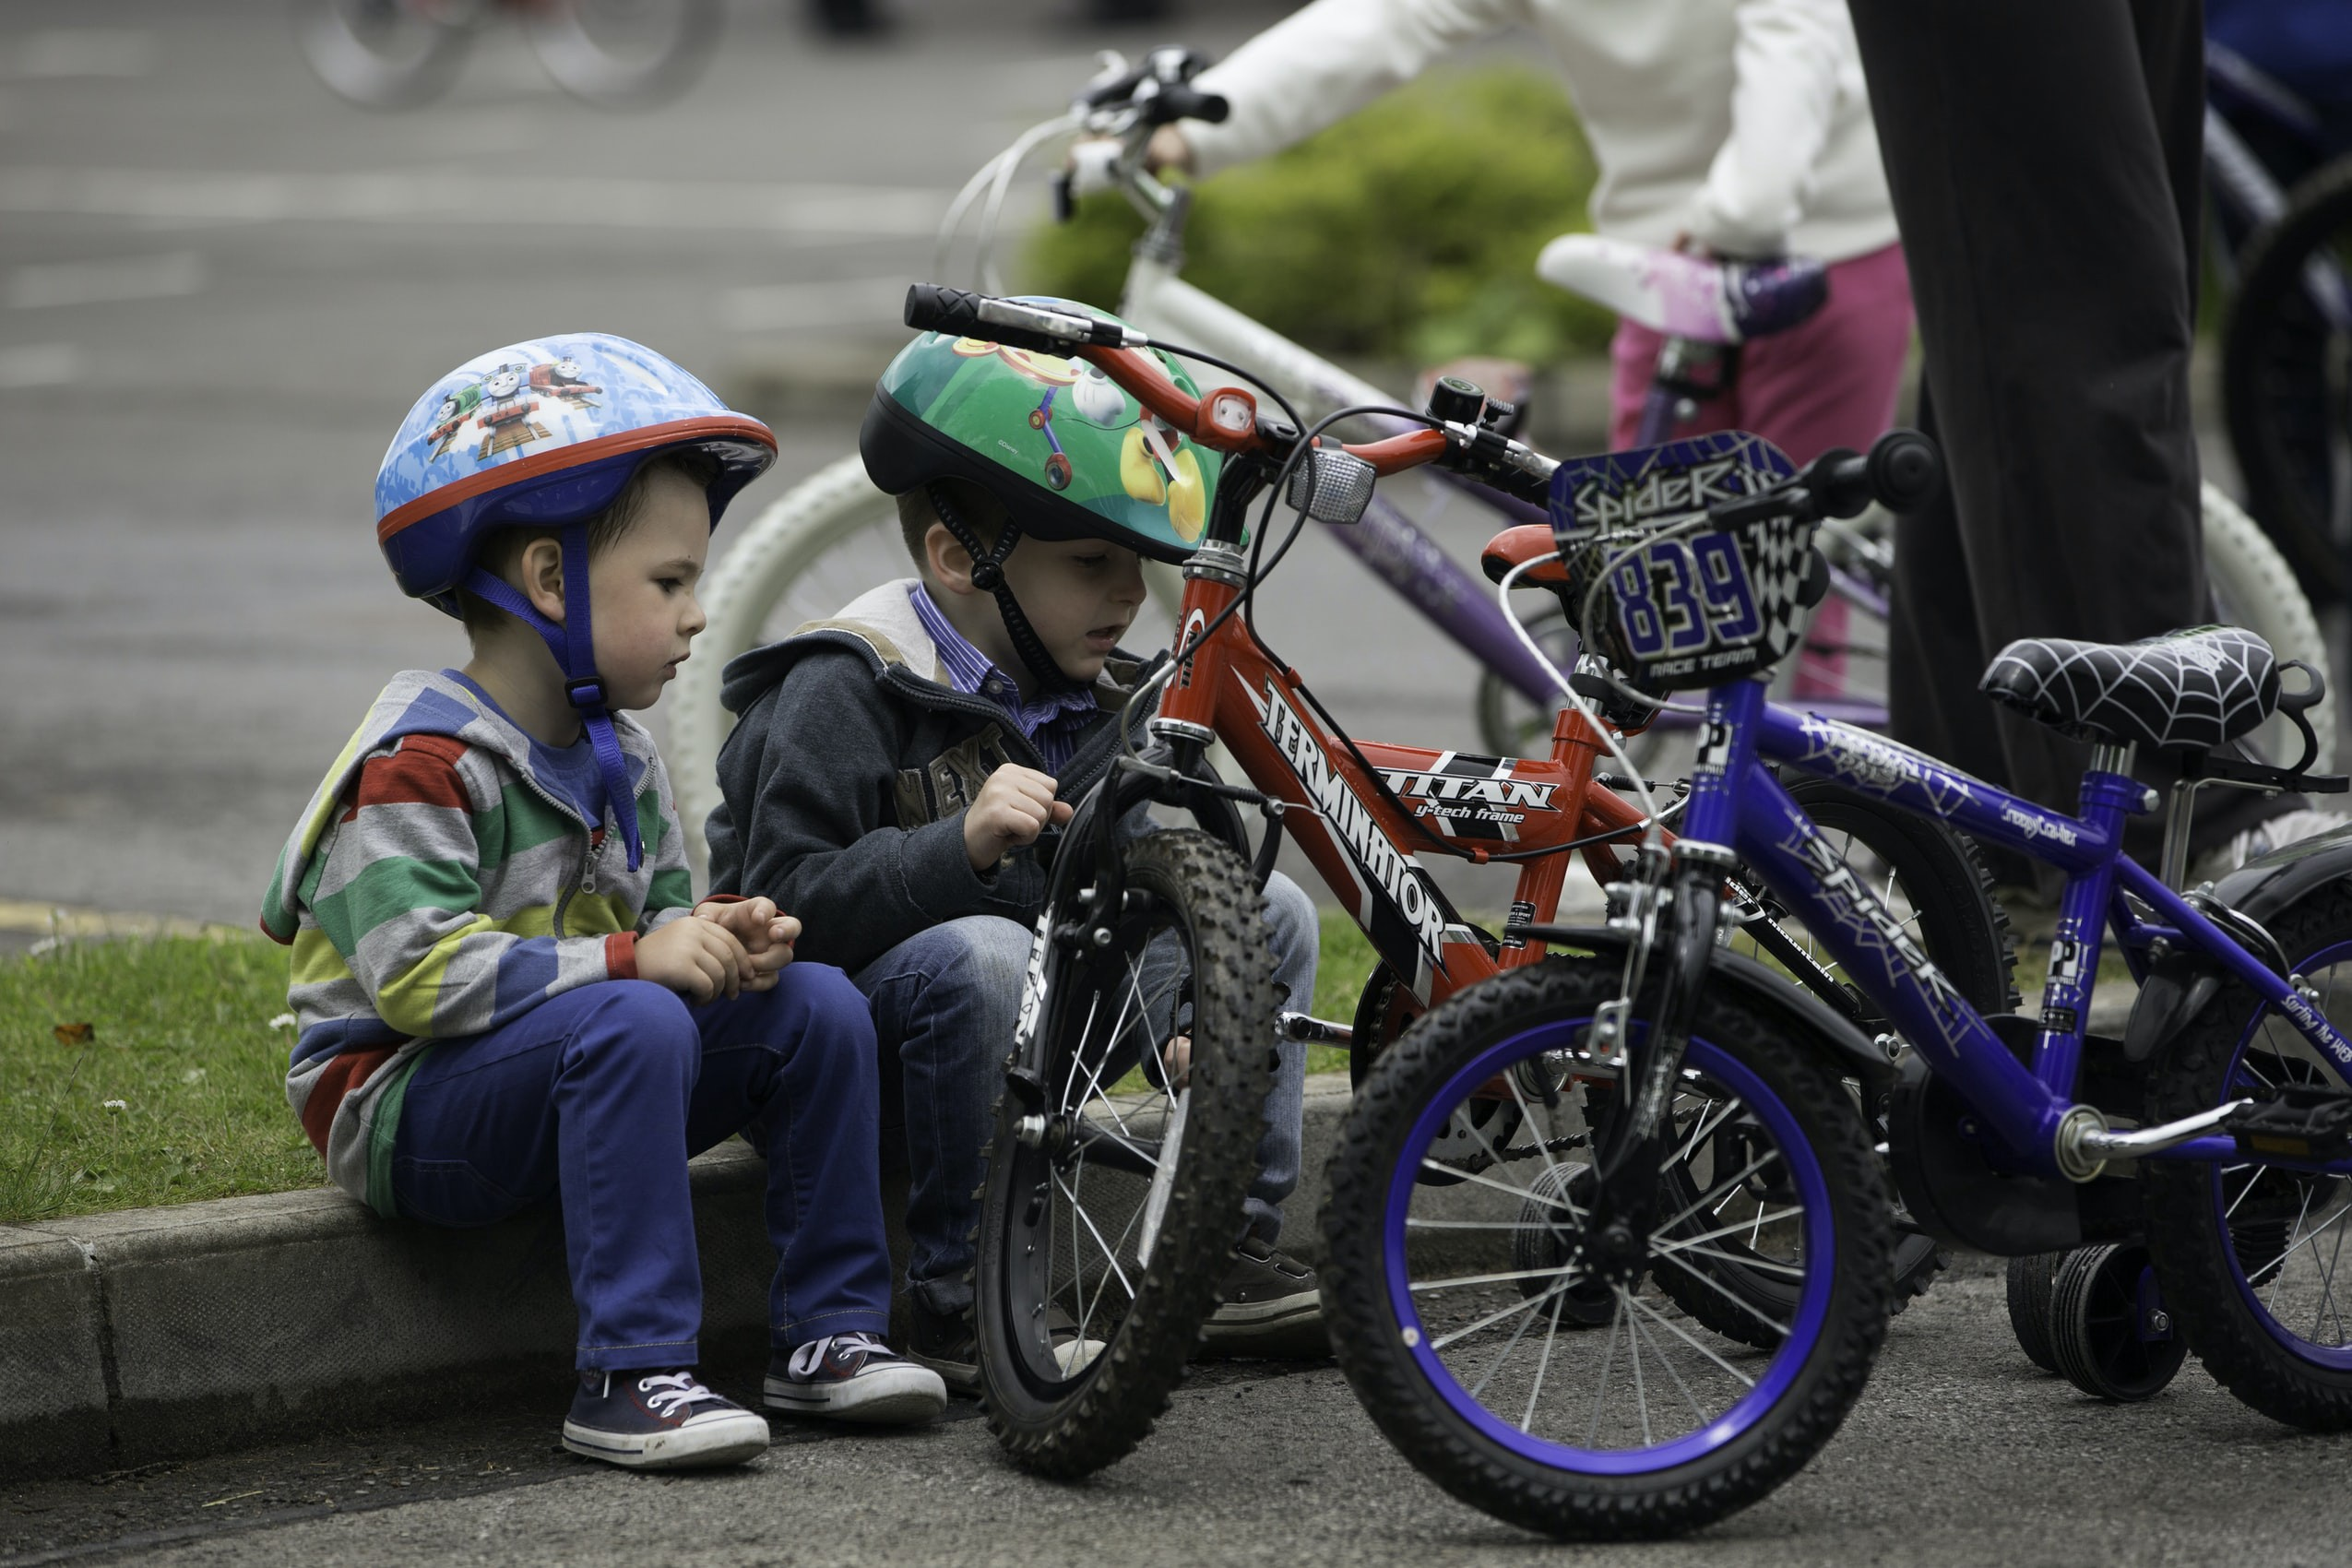 Two boys in helmets sitting on a curb next to bicycles.